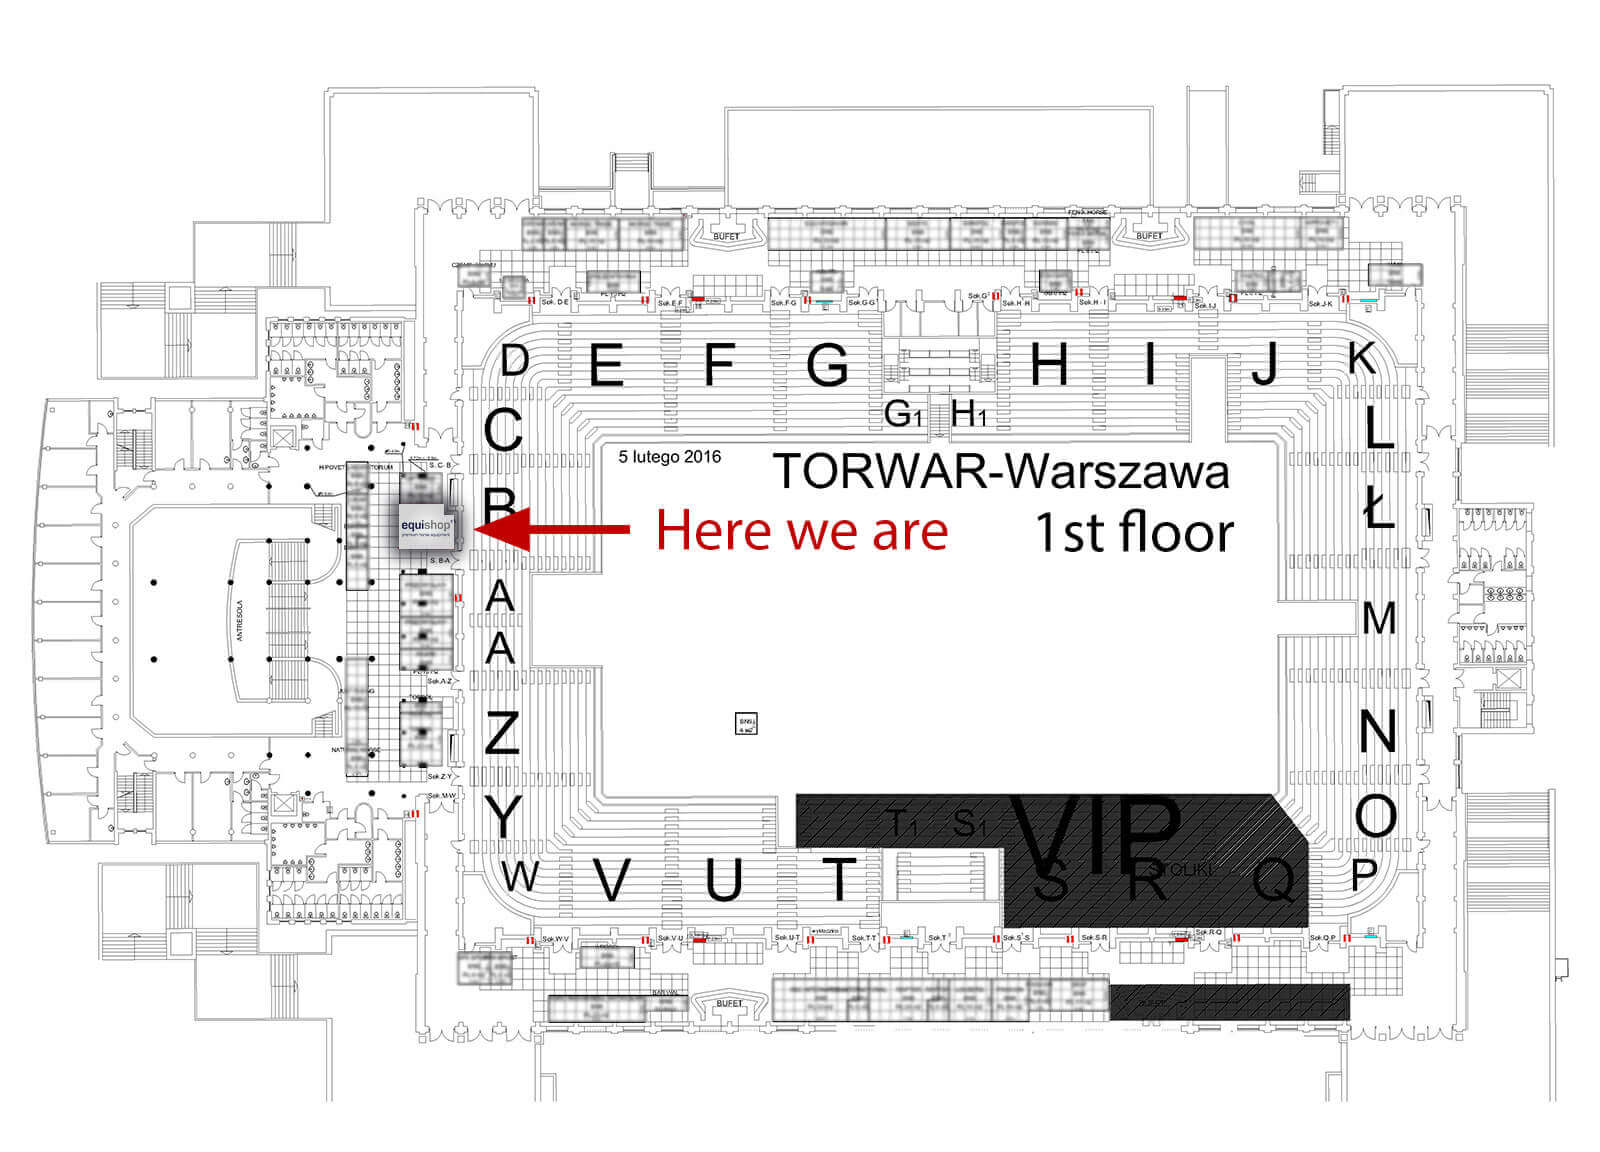 1st floor map at Cavaliada Warsaw 2016